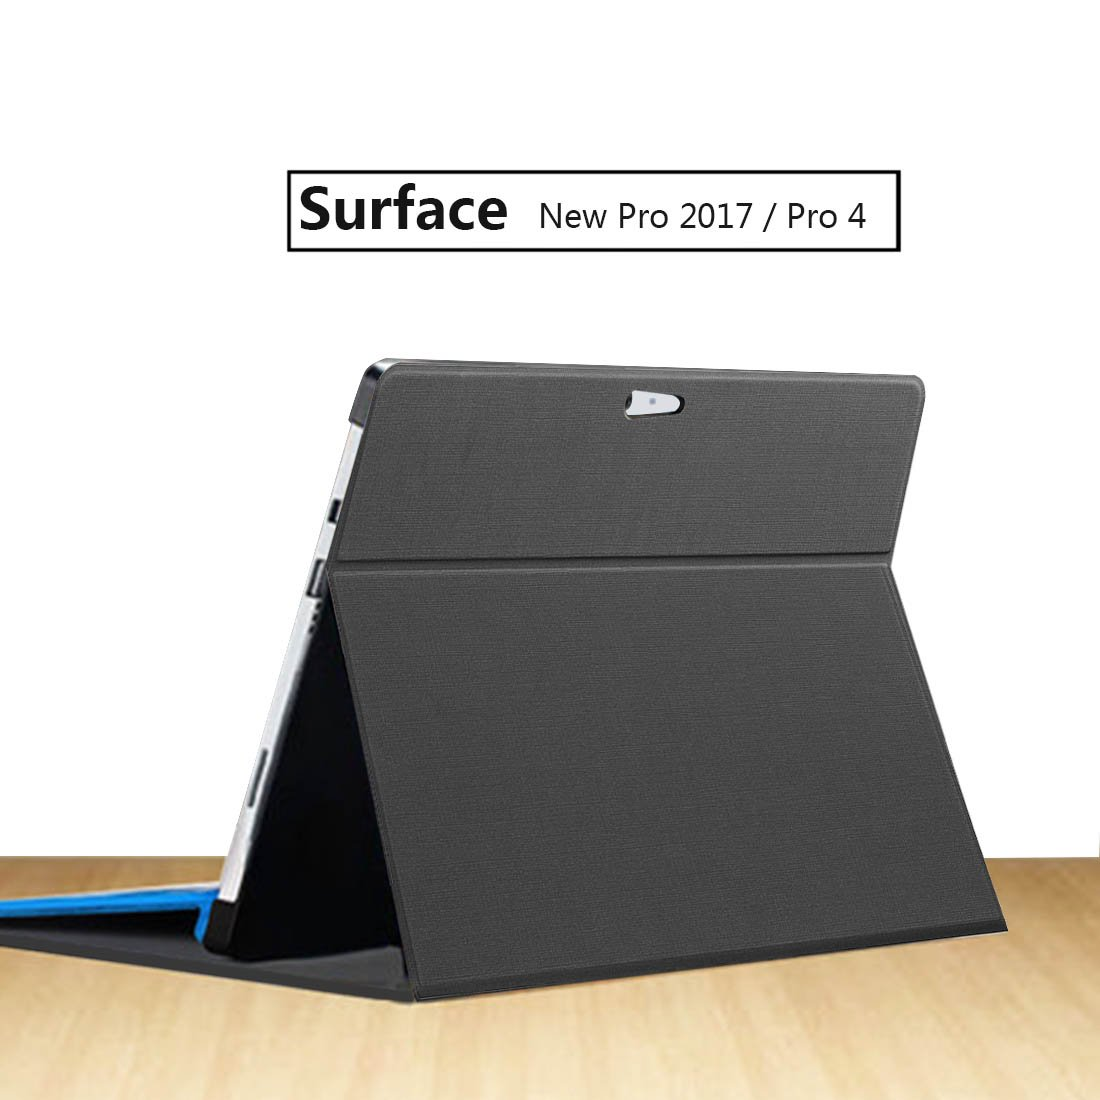 Megoo New Surface Pro/Pro 4 Folio Case - Slim Fit [Multi-Angle Viewing] [Magnetic] Folio Stand Cover for Microsoft Pro 4 & New Surface Pro (2017) / Compatible with Type Cover Keyboard - Black